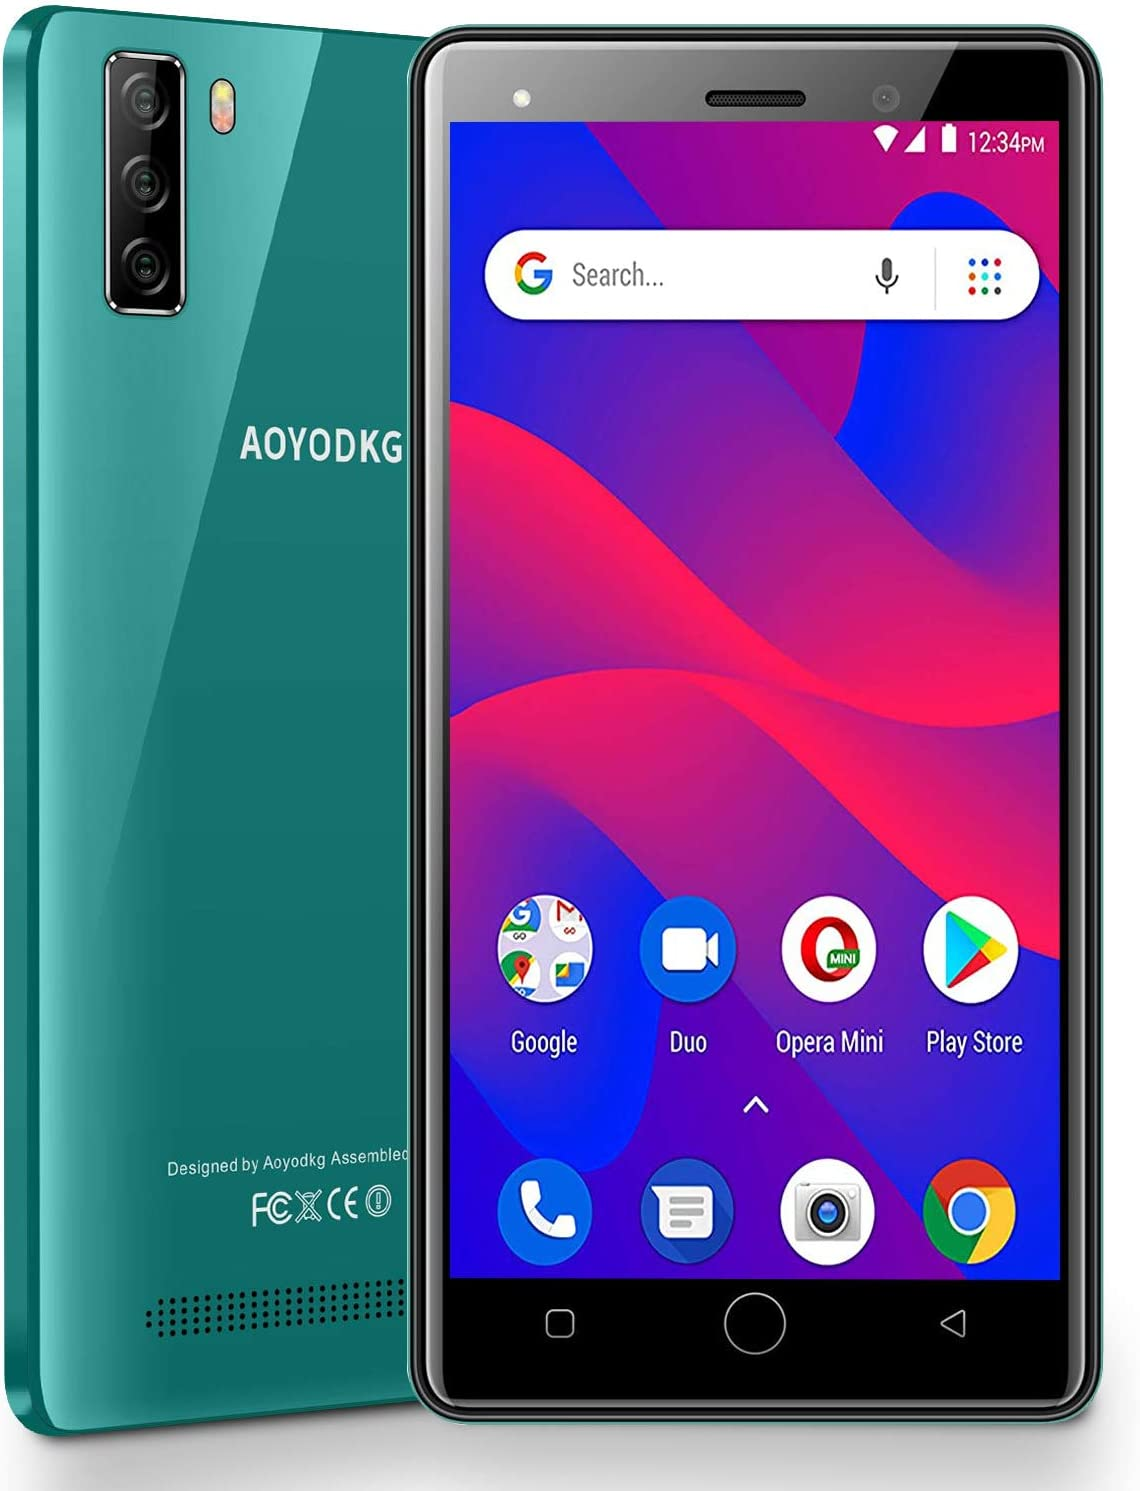 Moviles Libres 4G Android 9.0 Pie, A10+(2020) 16GB ROM/128GB 5.0 HD Smartphone Libre Quad-Core Dual SIM Dual Cámara 8MP+5MP 3400mAh GPS Bluetooth Moviles Buenos (Verde): Amazon.es: Electrónica